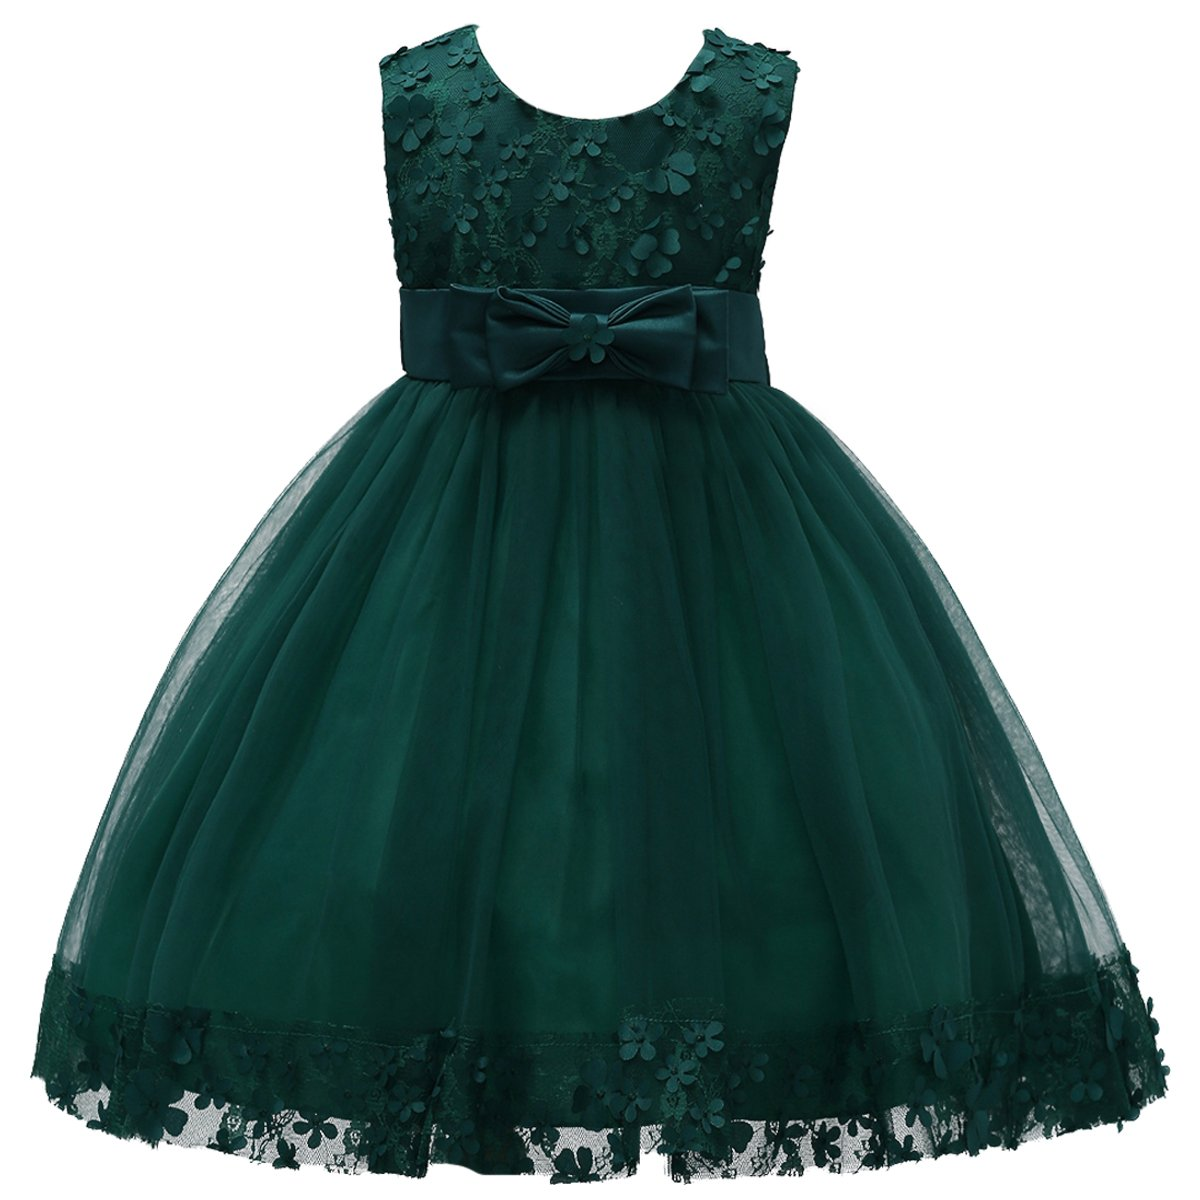 2-10T Big Little Girl Ball Gown Short Lace Flower Tulle Prom Dresses for Wedding Party Evening Dance